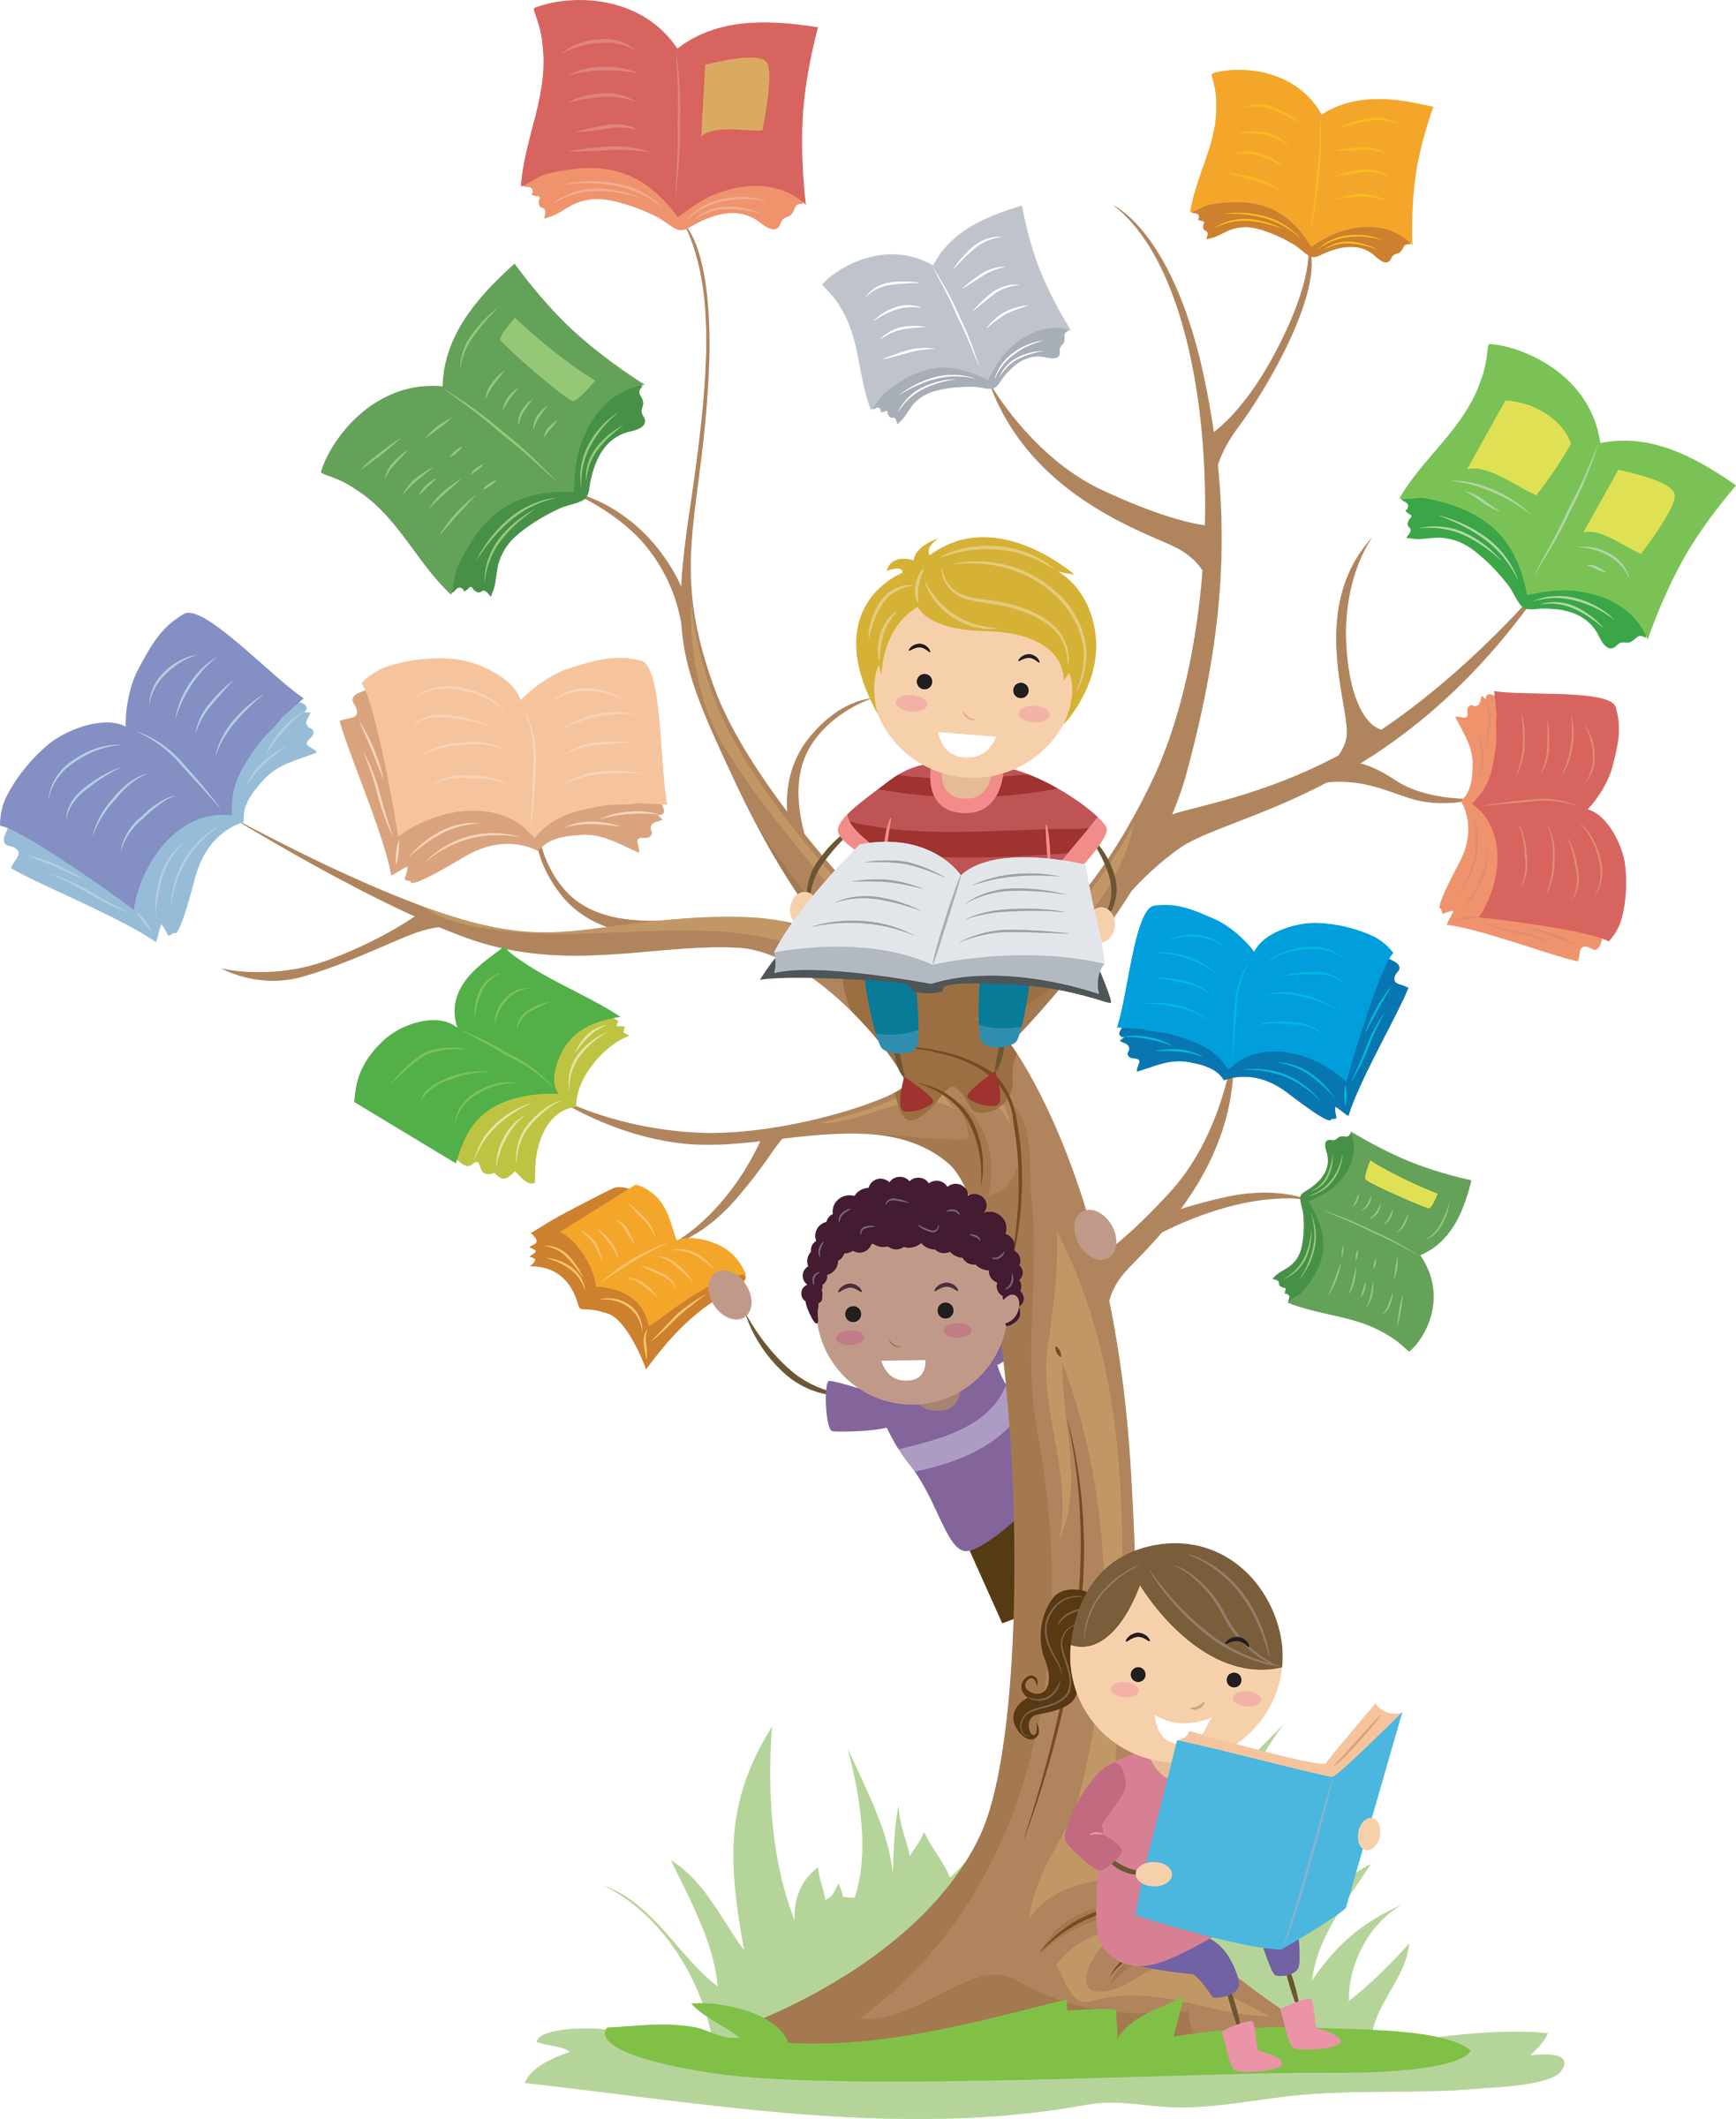 Missions clipart preschool. Kids learning clip art